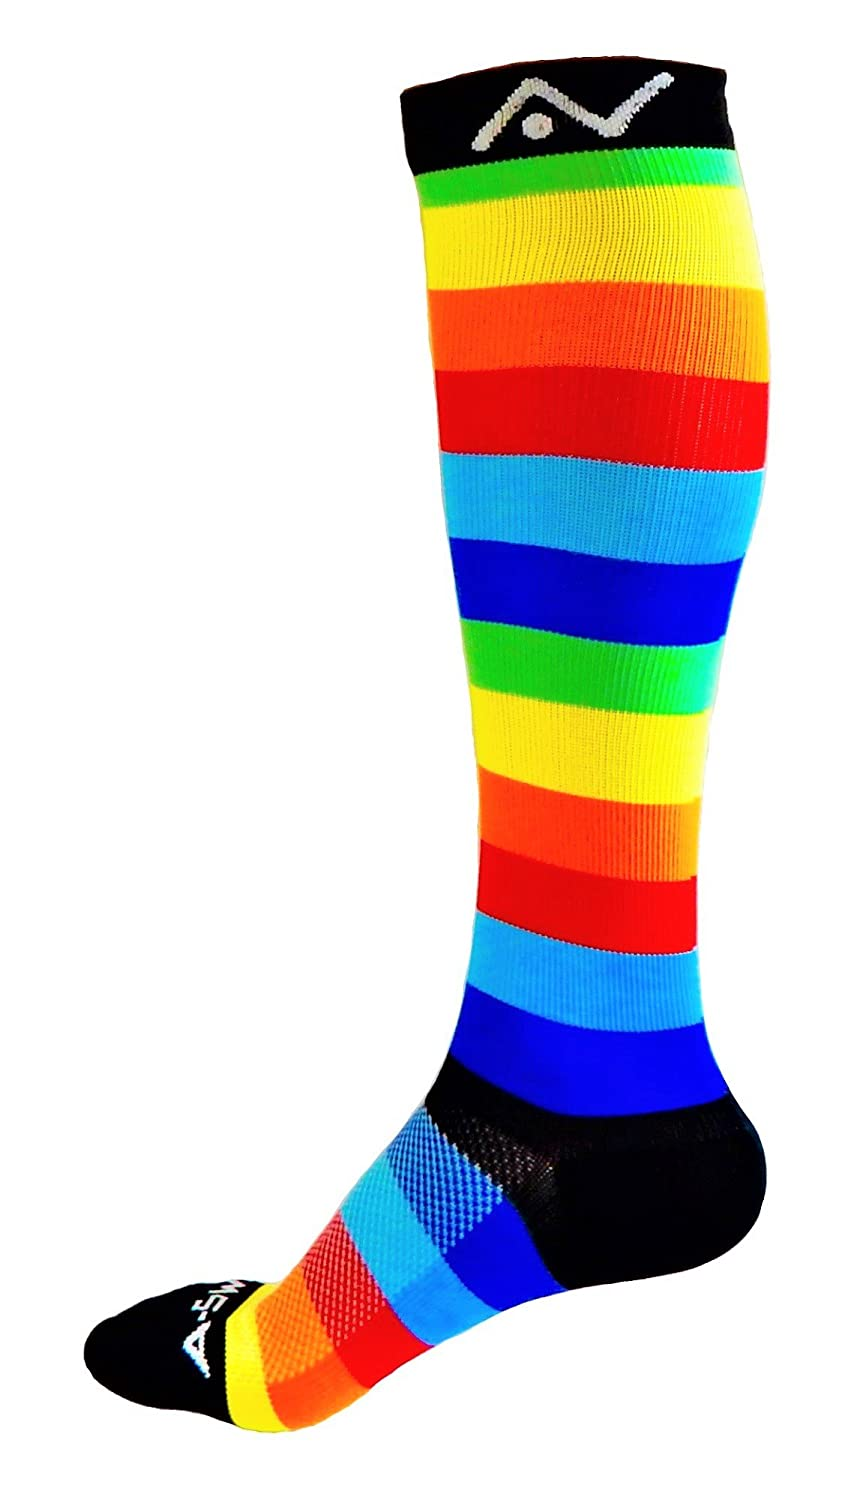 A-Swift Compression Socks for Women and Men - Rainbow Stripes, Small